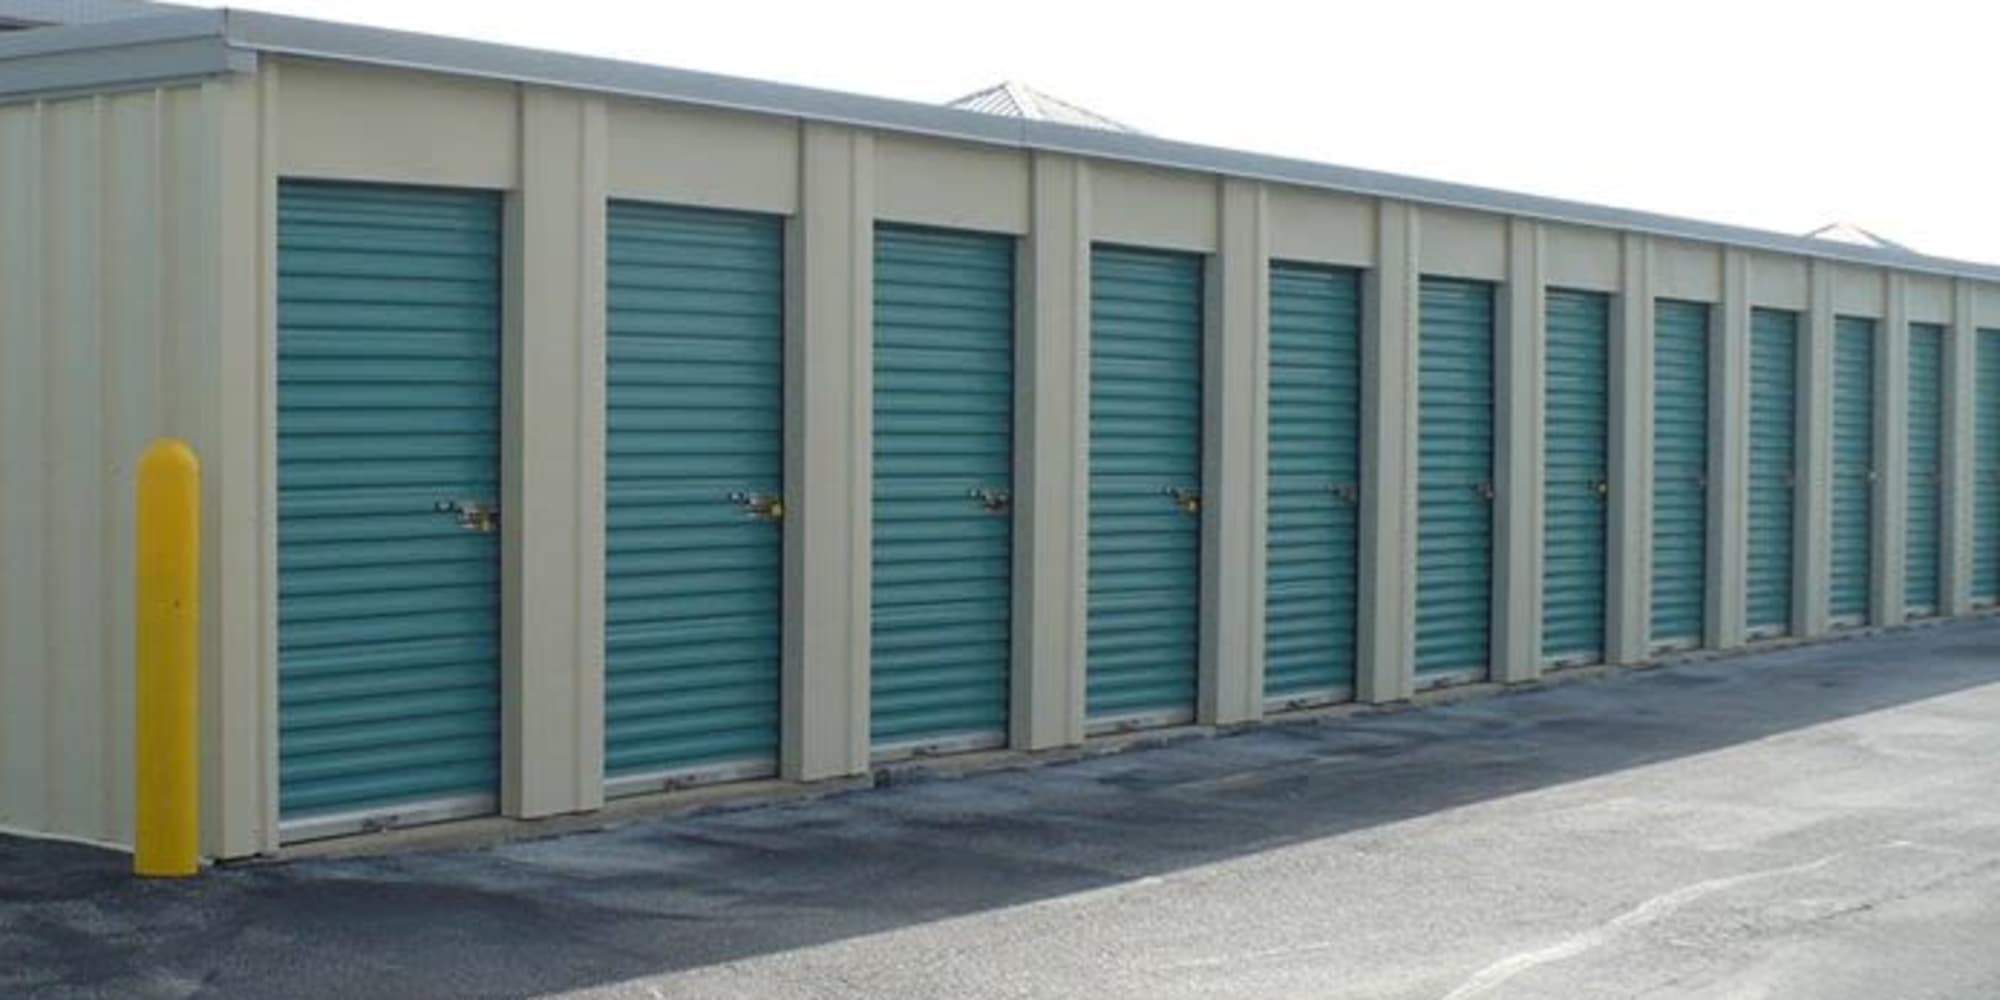 Hours and directions to A Storage Solution of Destin in Destin, Florida